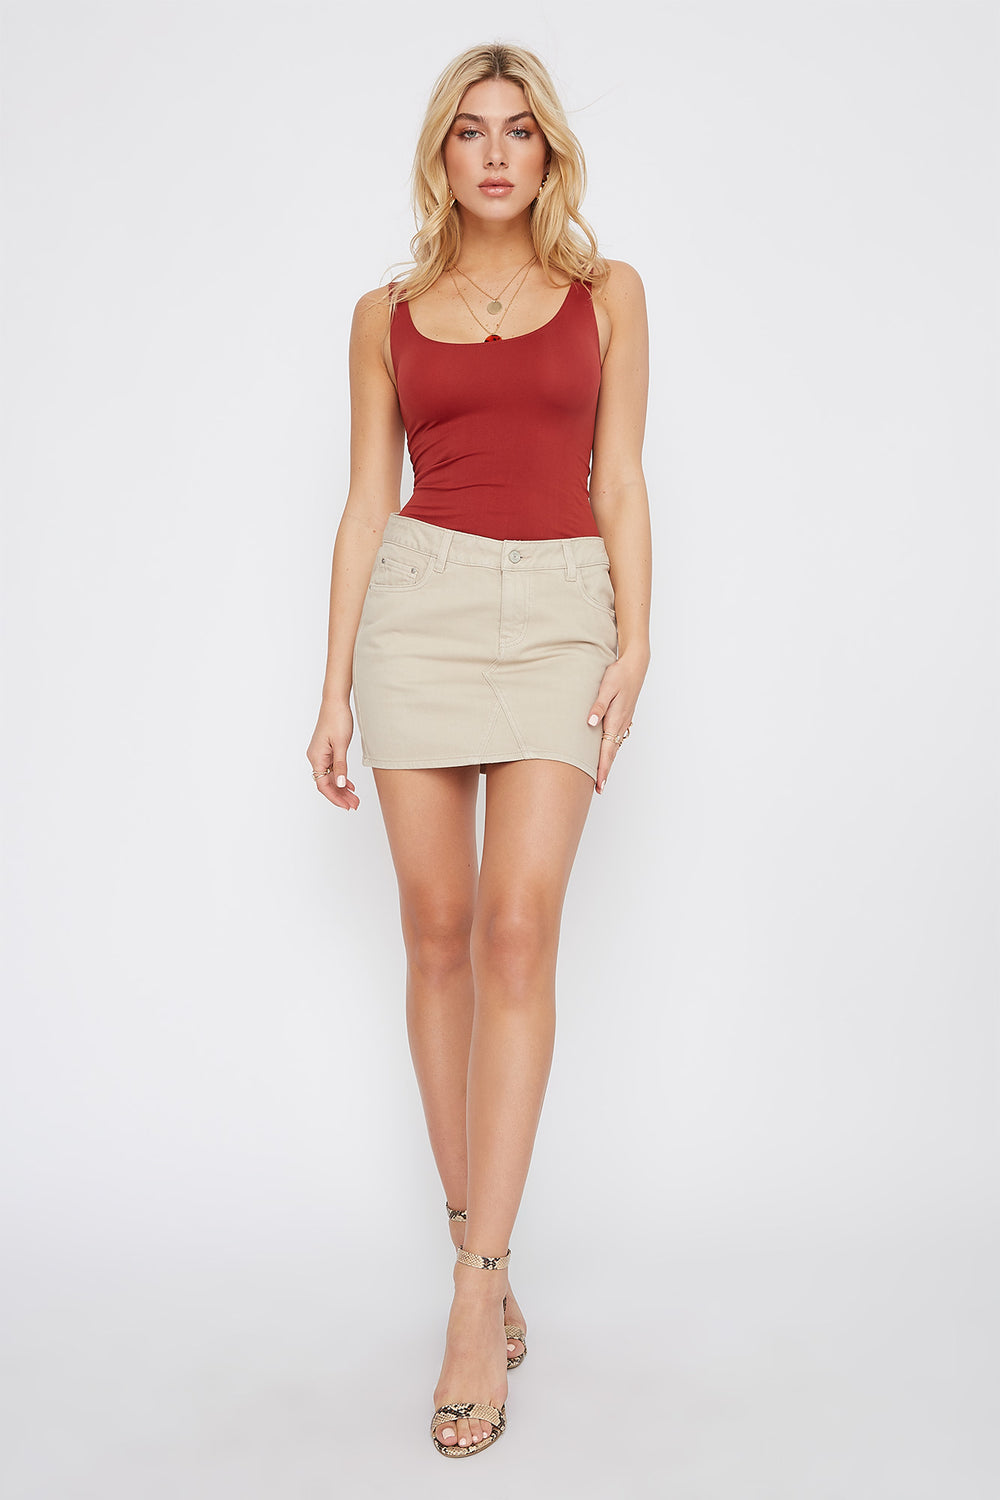 Refuge Oatmeal Denim Mini Skirt Oatmeal